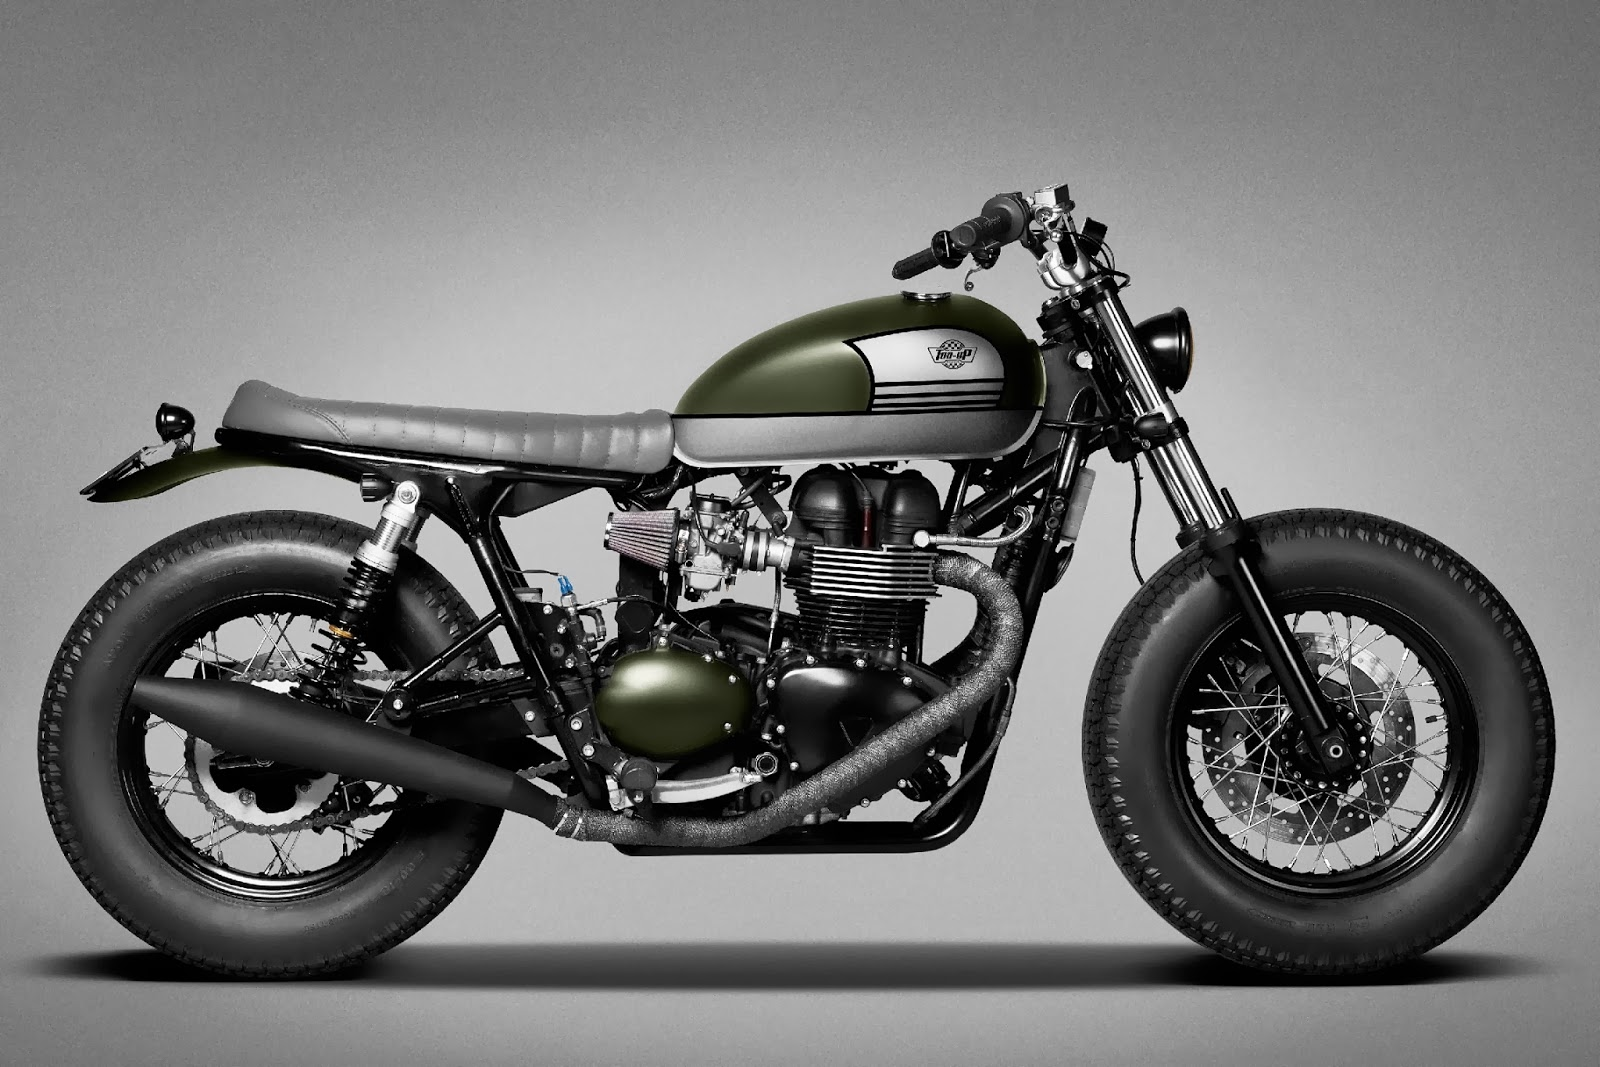 Triumph Bonneville Custom by Top-Up Garage